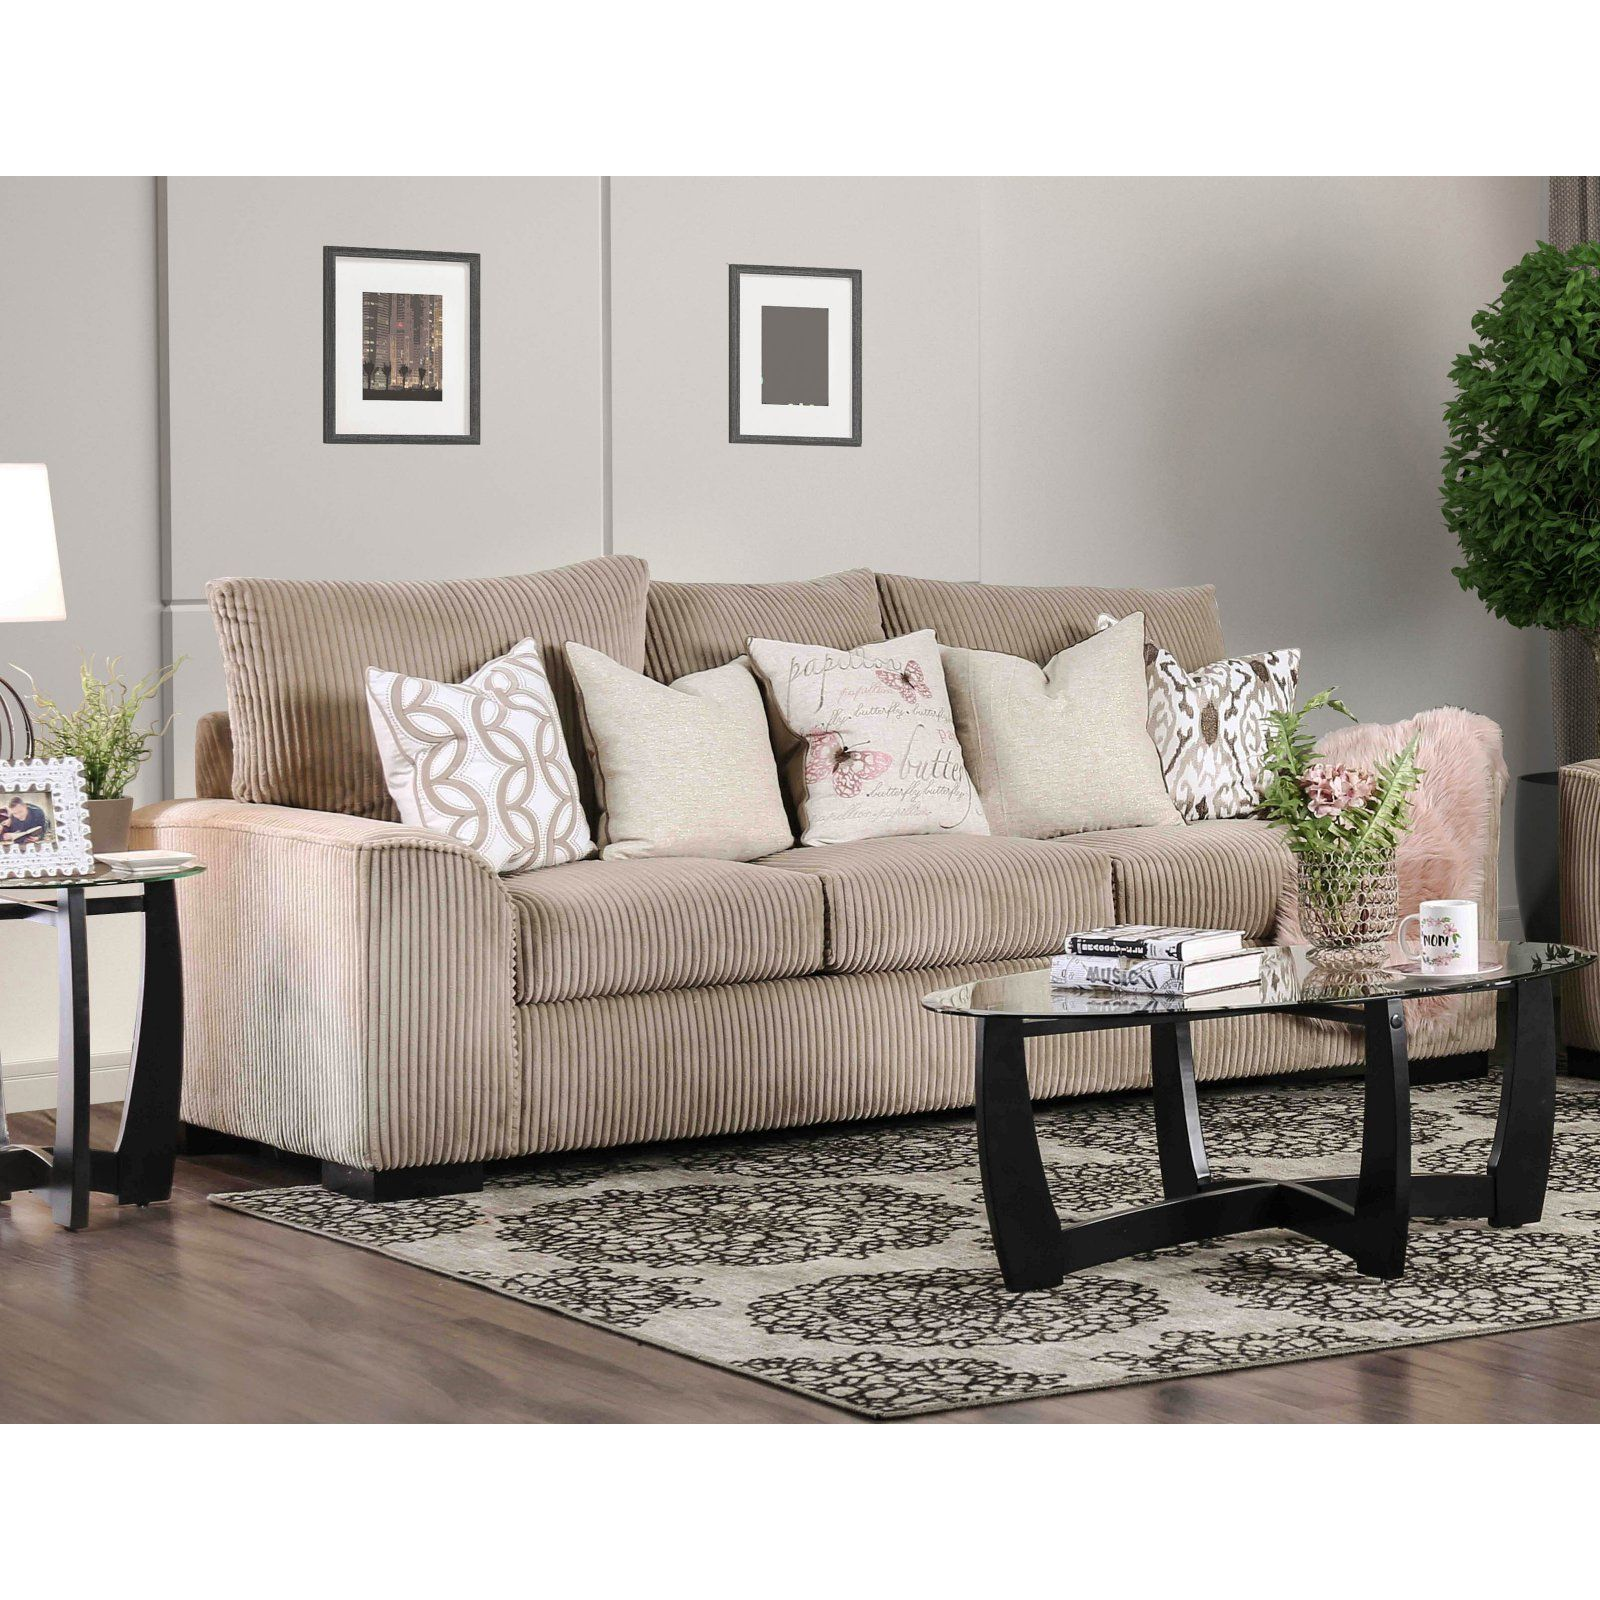 Furniture Of America Carino Wide Wale